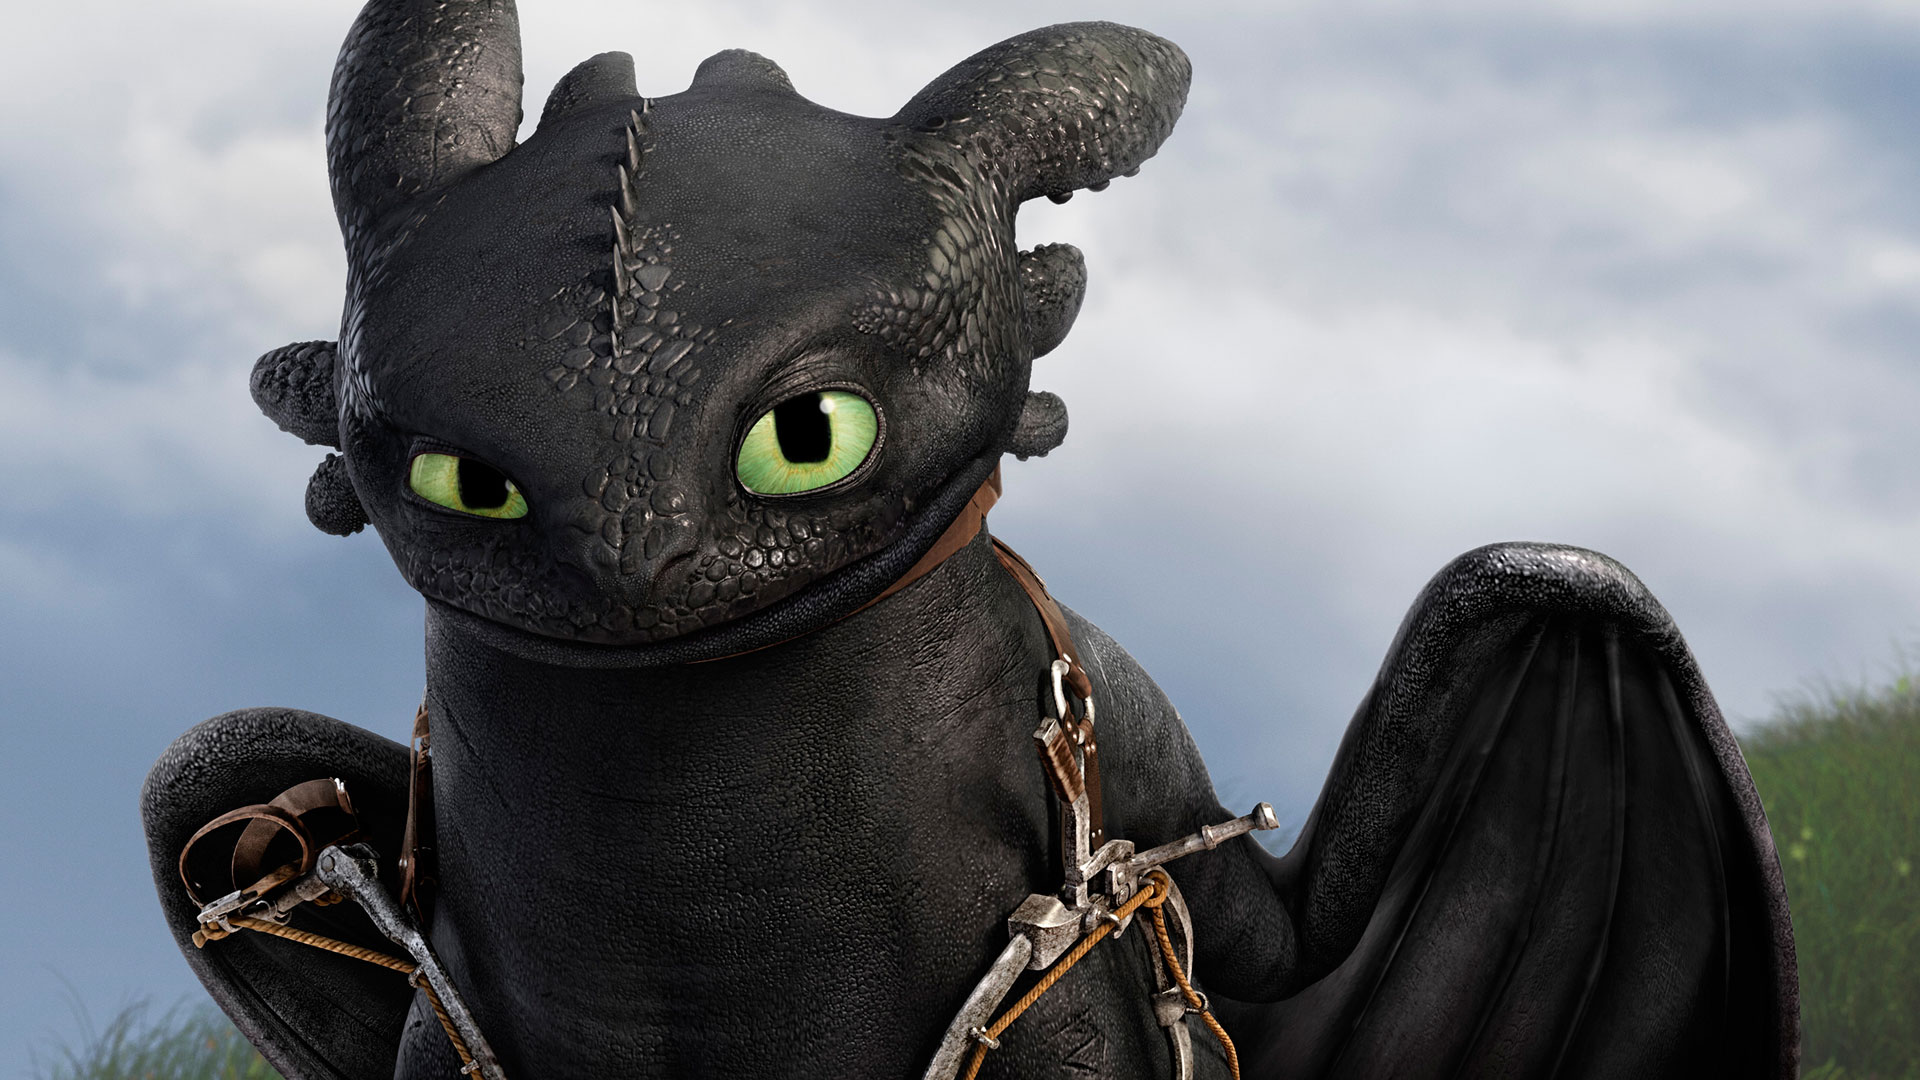 Toothless How To Train Your Dragon 2 Wallpaper 1920x10801